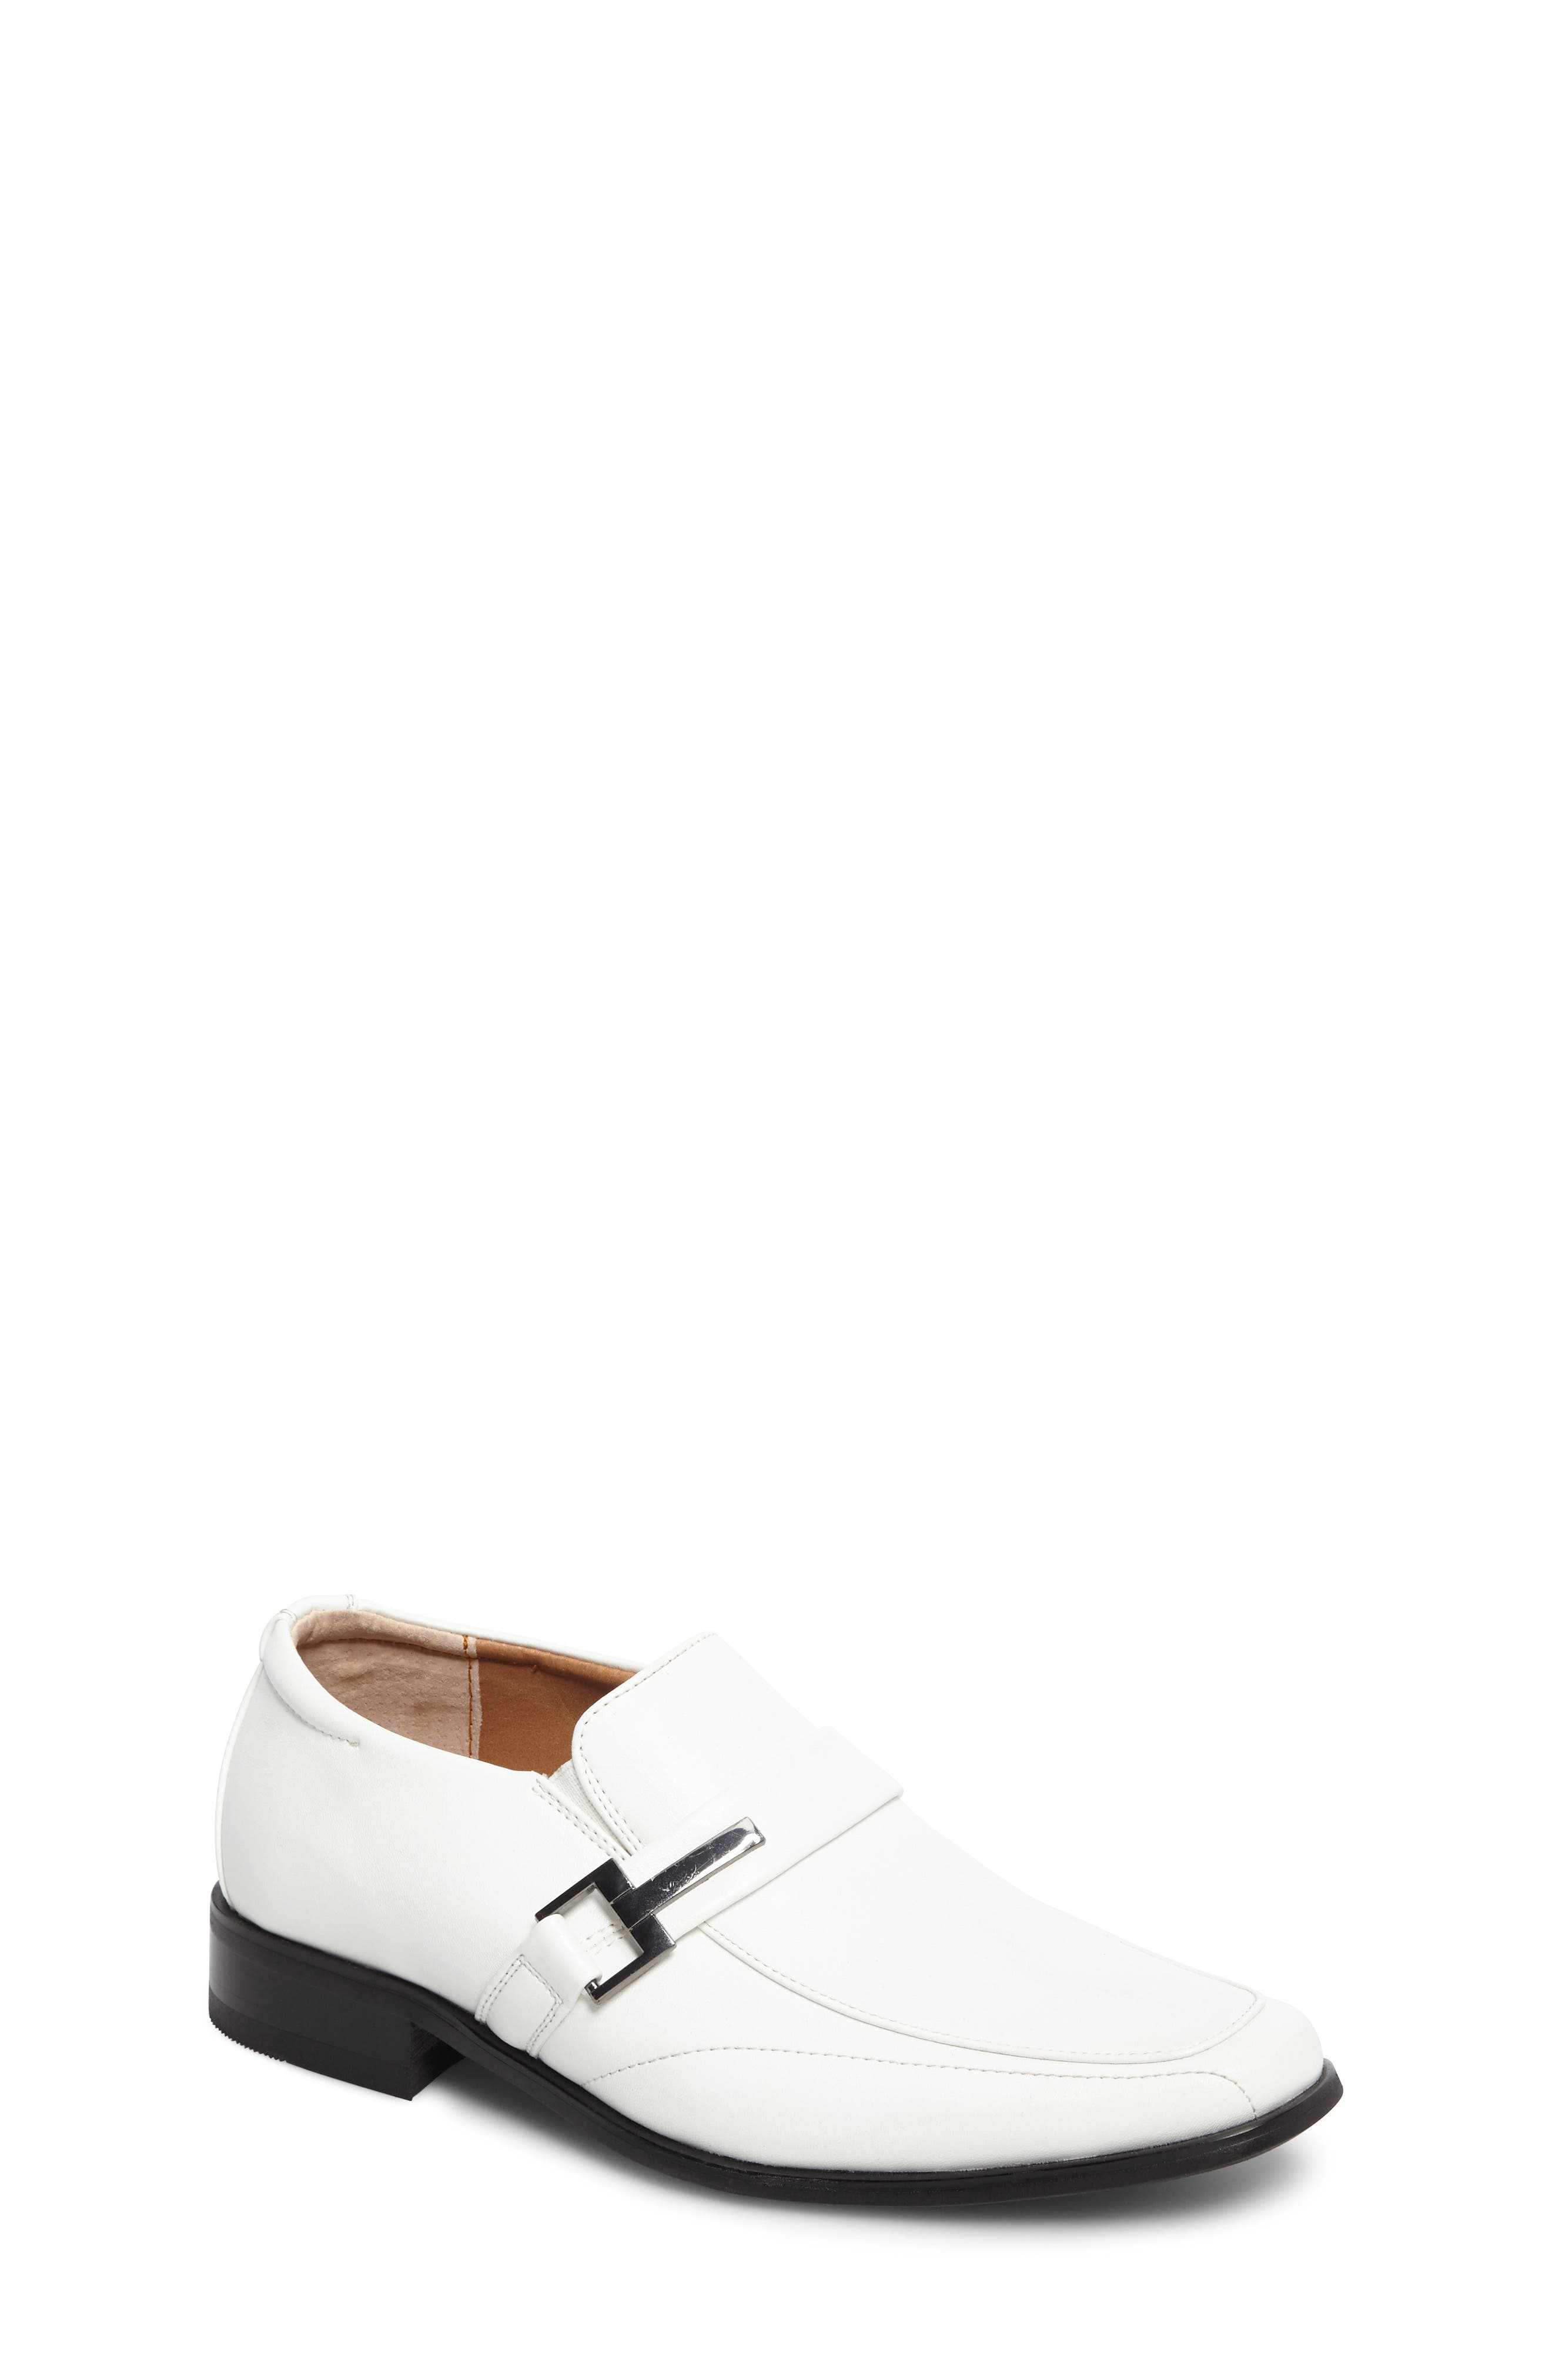 Bartley Loafer,                             Main thumbnail 1, color,                             White